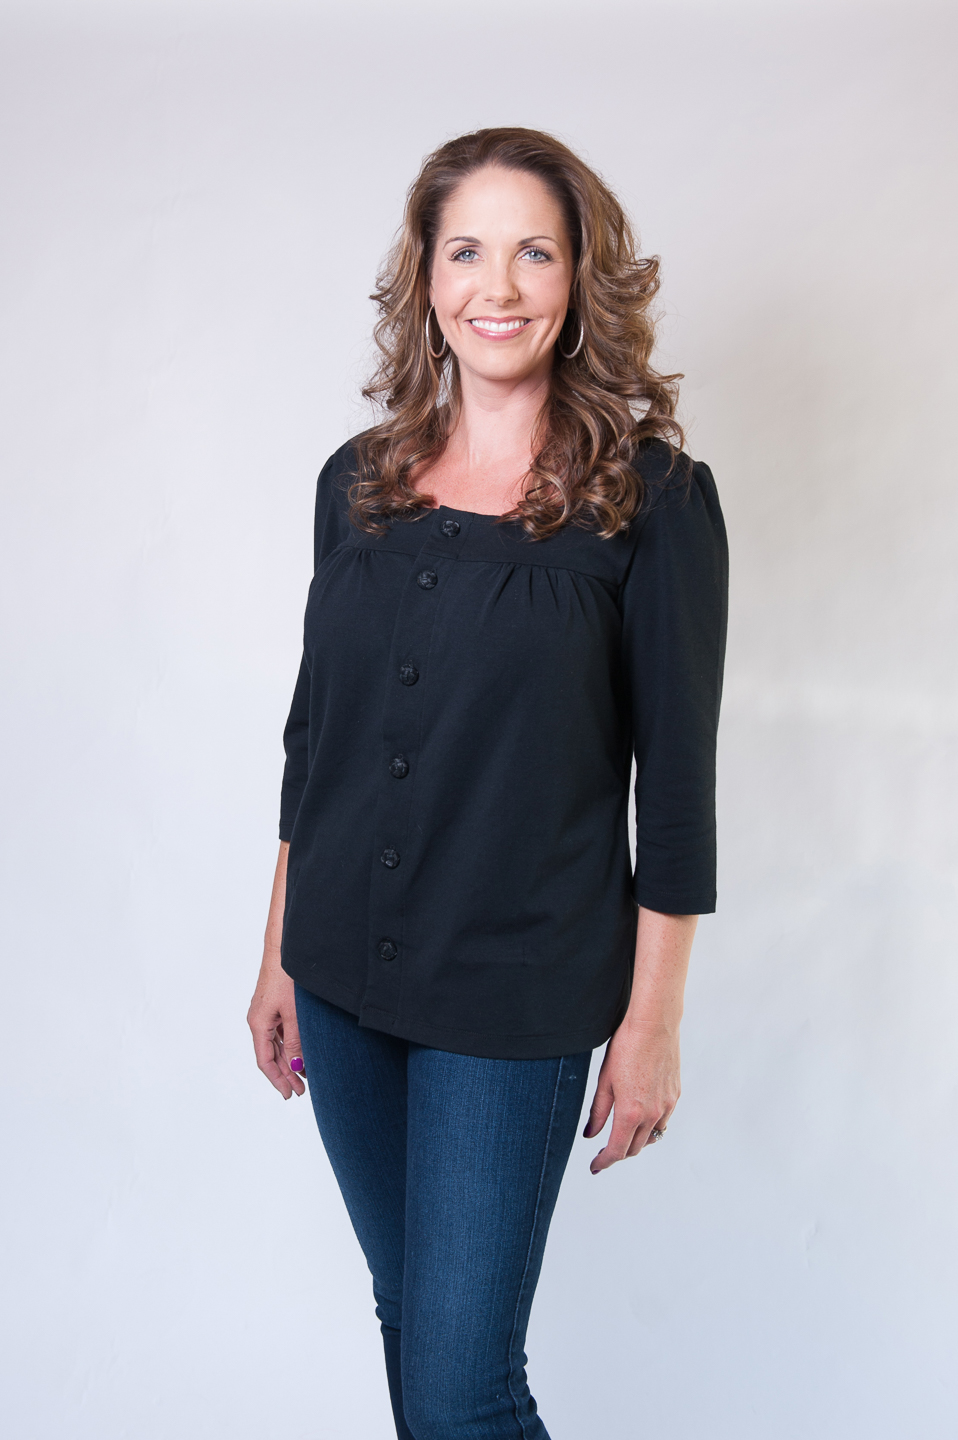 Dianne - Long Sleeve Button-Up Top in BLACK $69.95